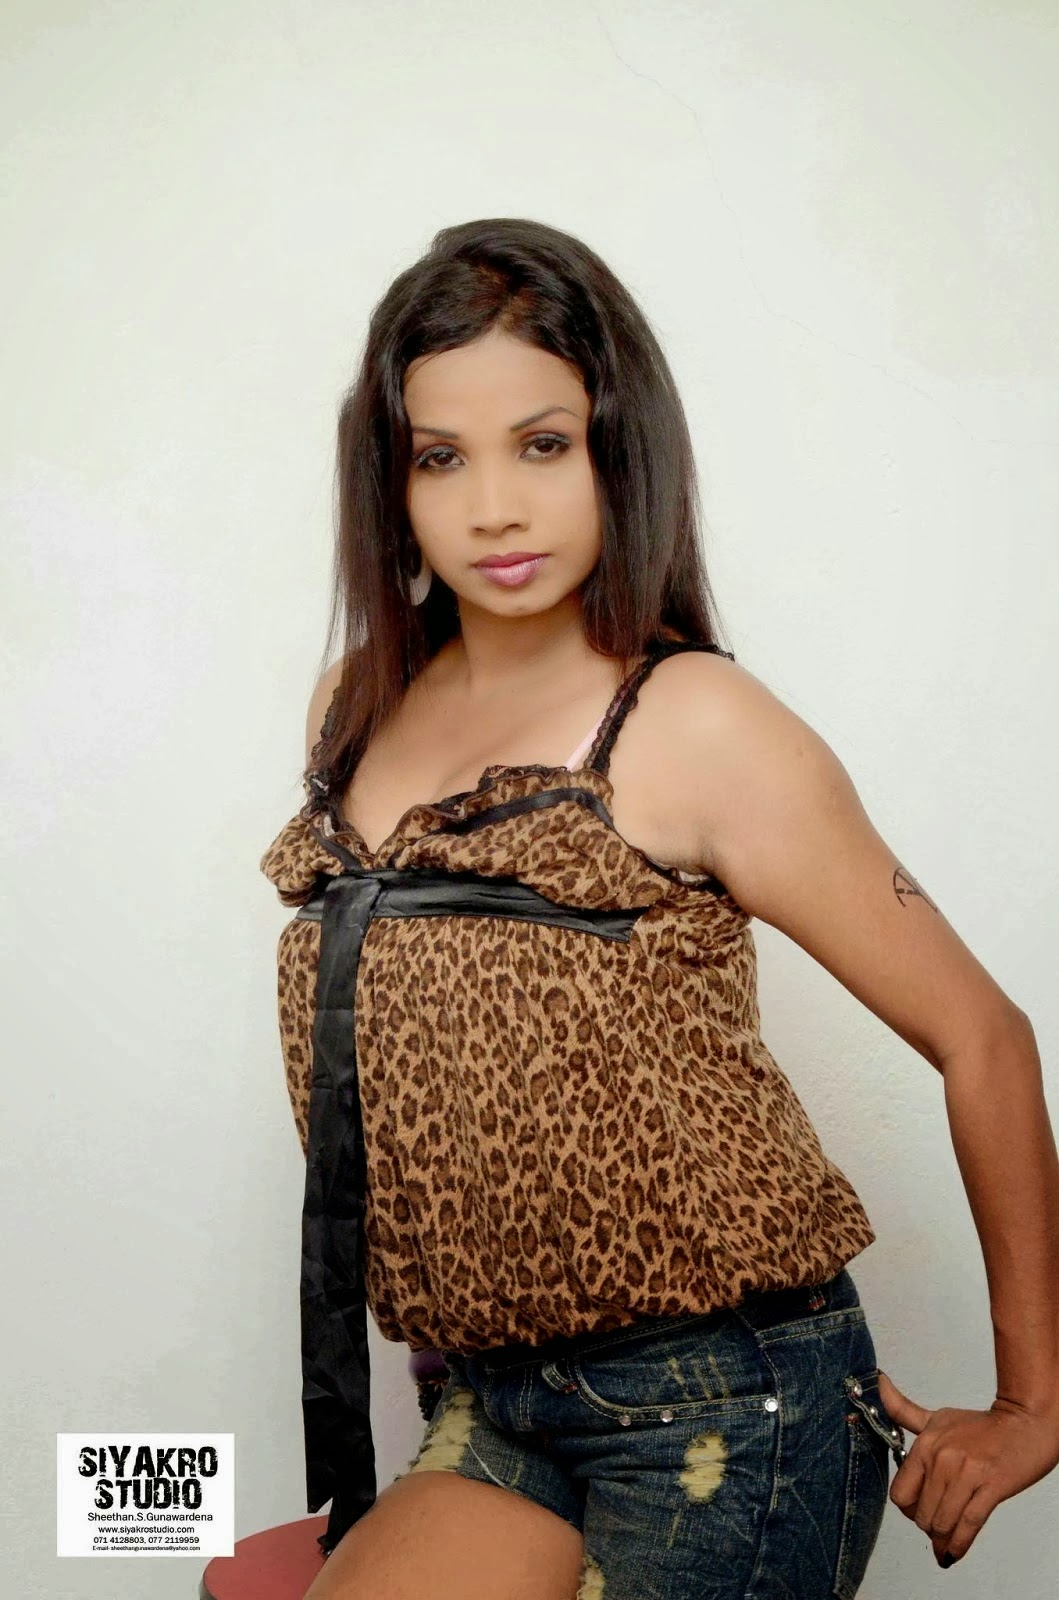 nagpur free dating